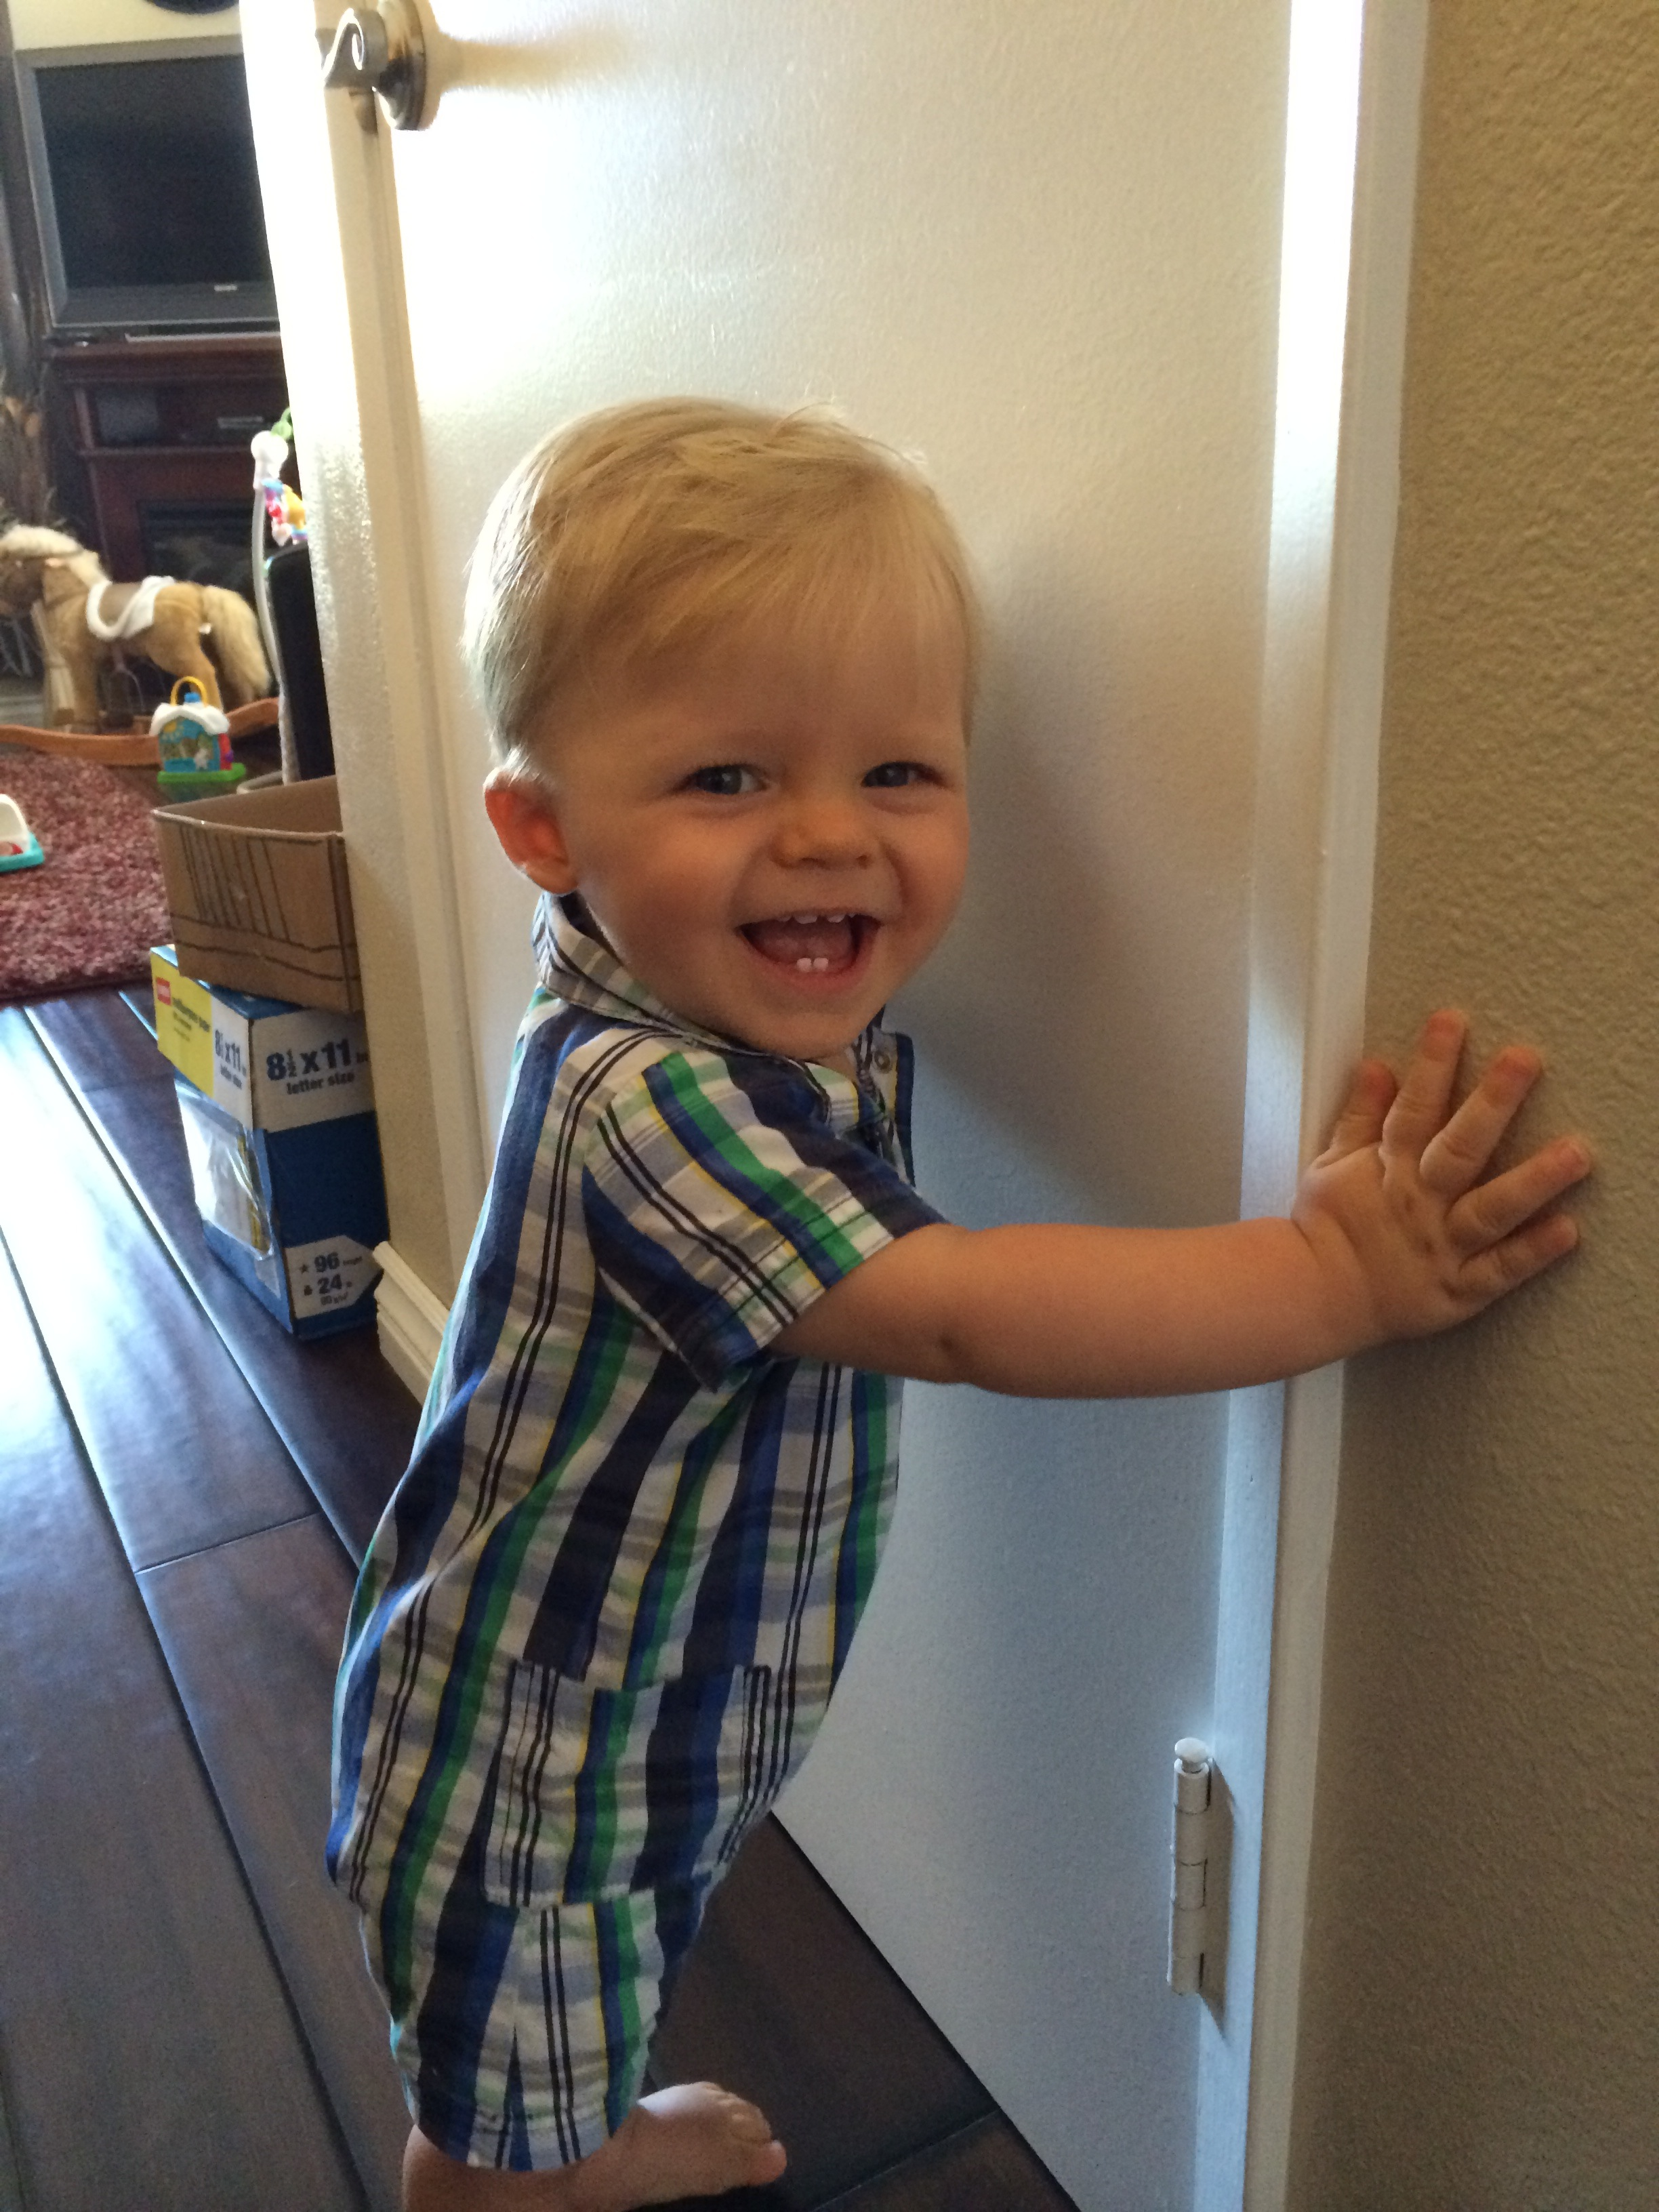 Carter is now 10 months old and walking around on the walls and furniture!